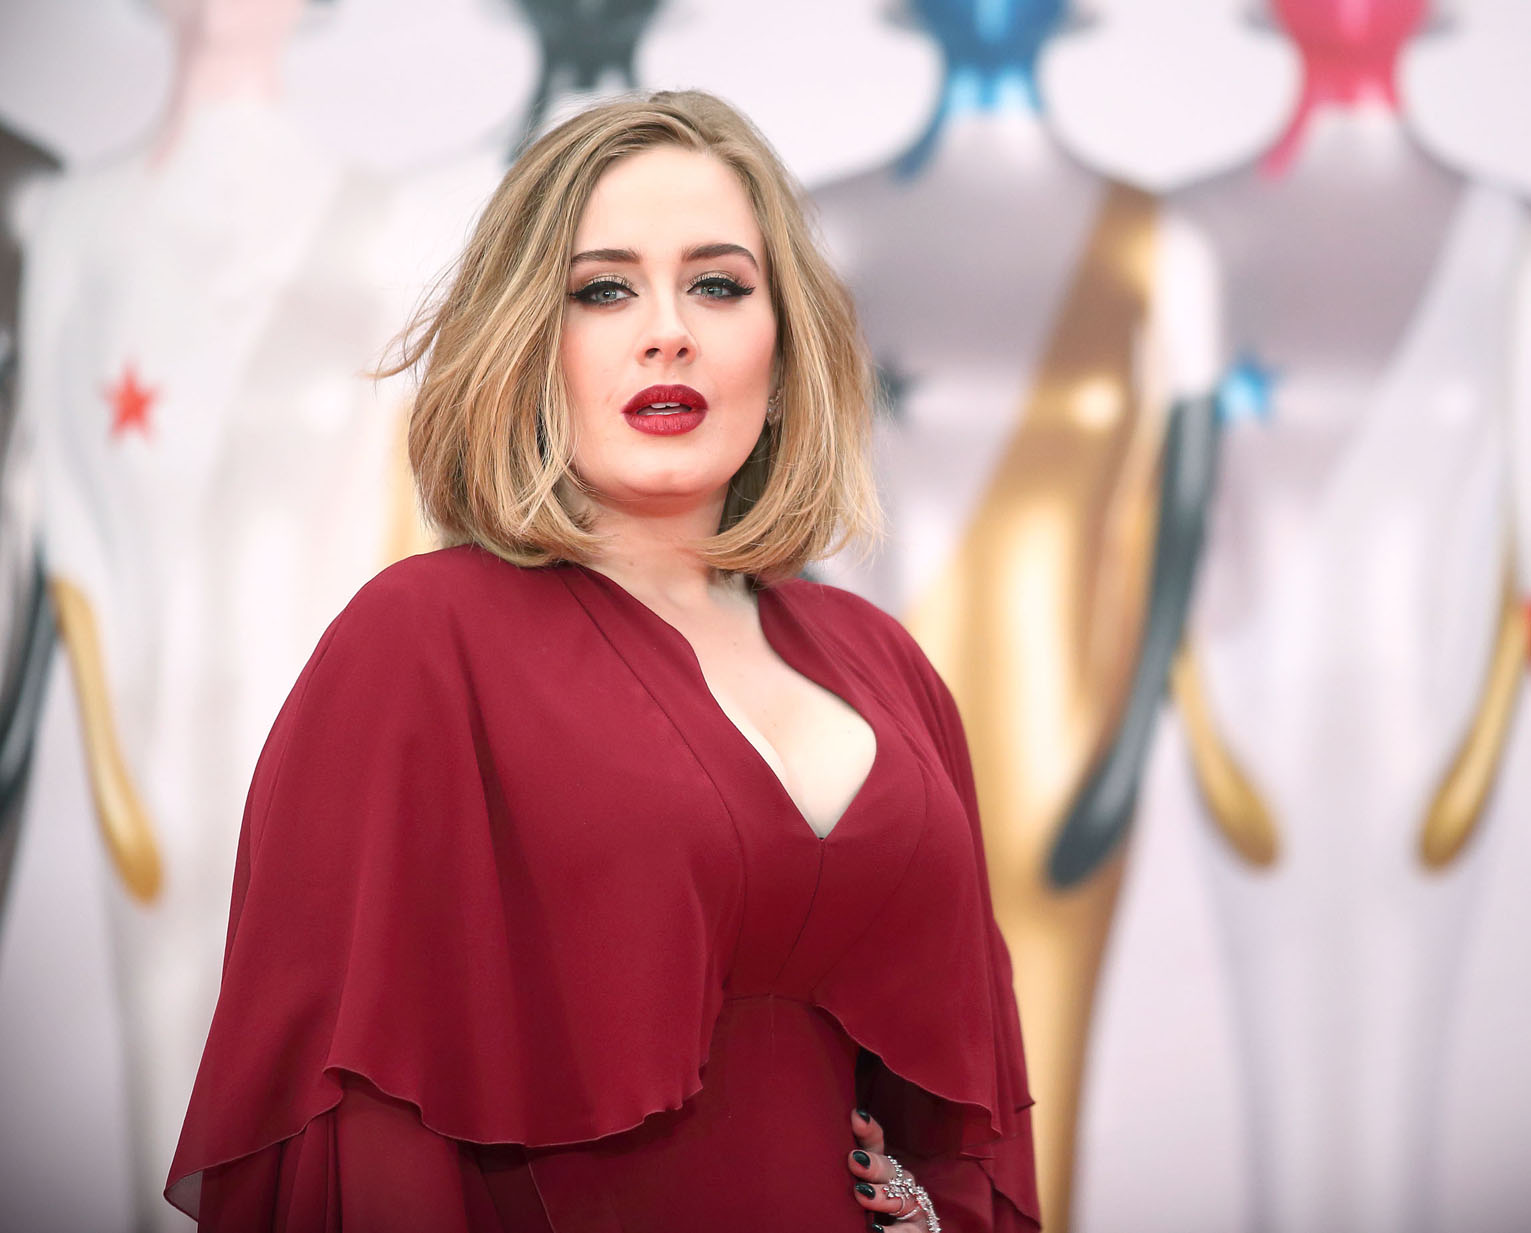 Fans Are Convinced Adele's About to Drop New Music — Here's Why